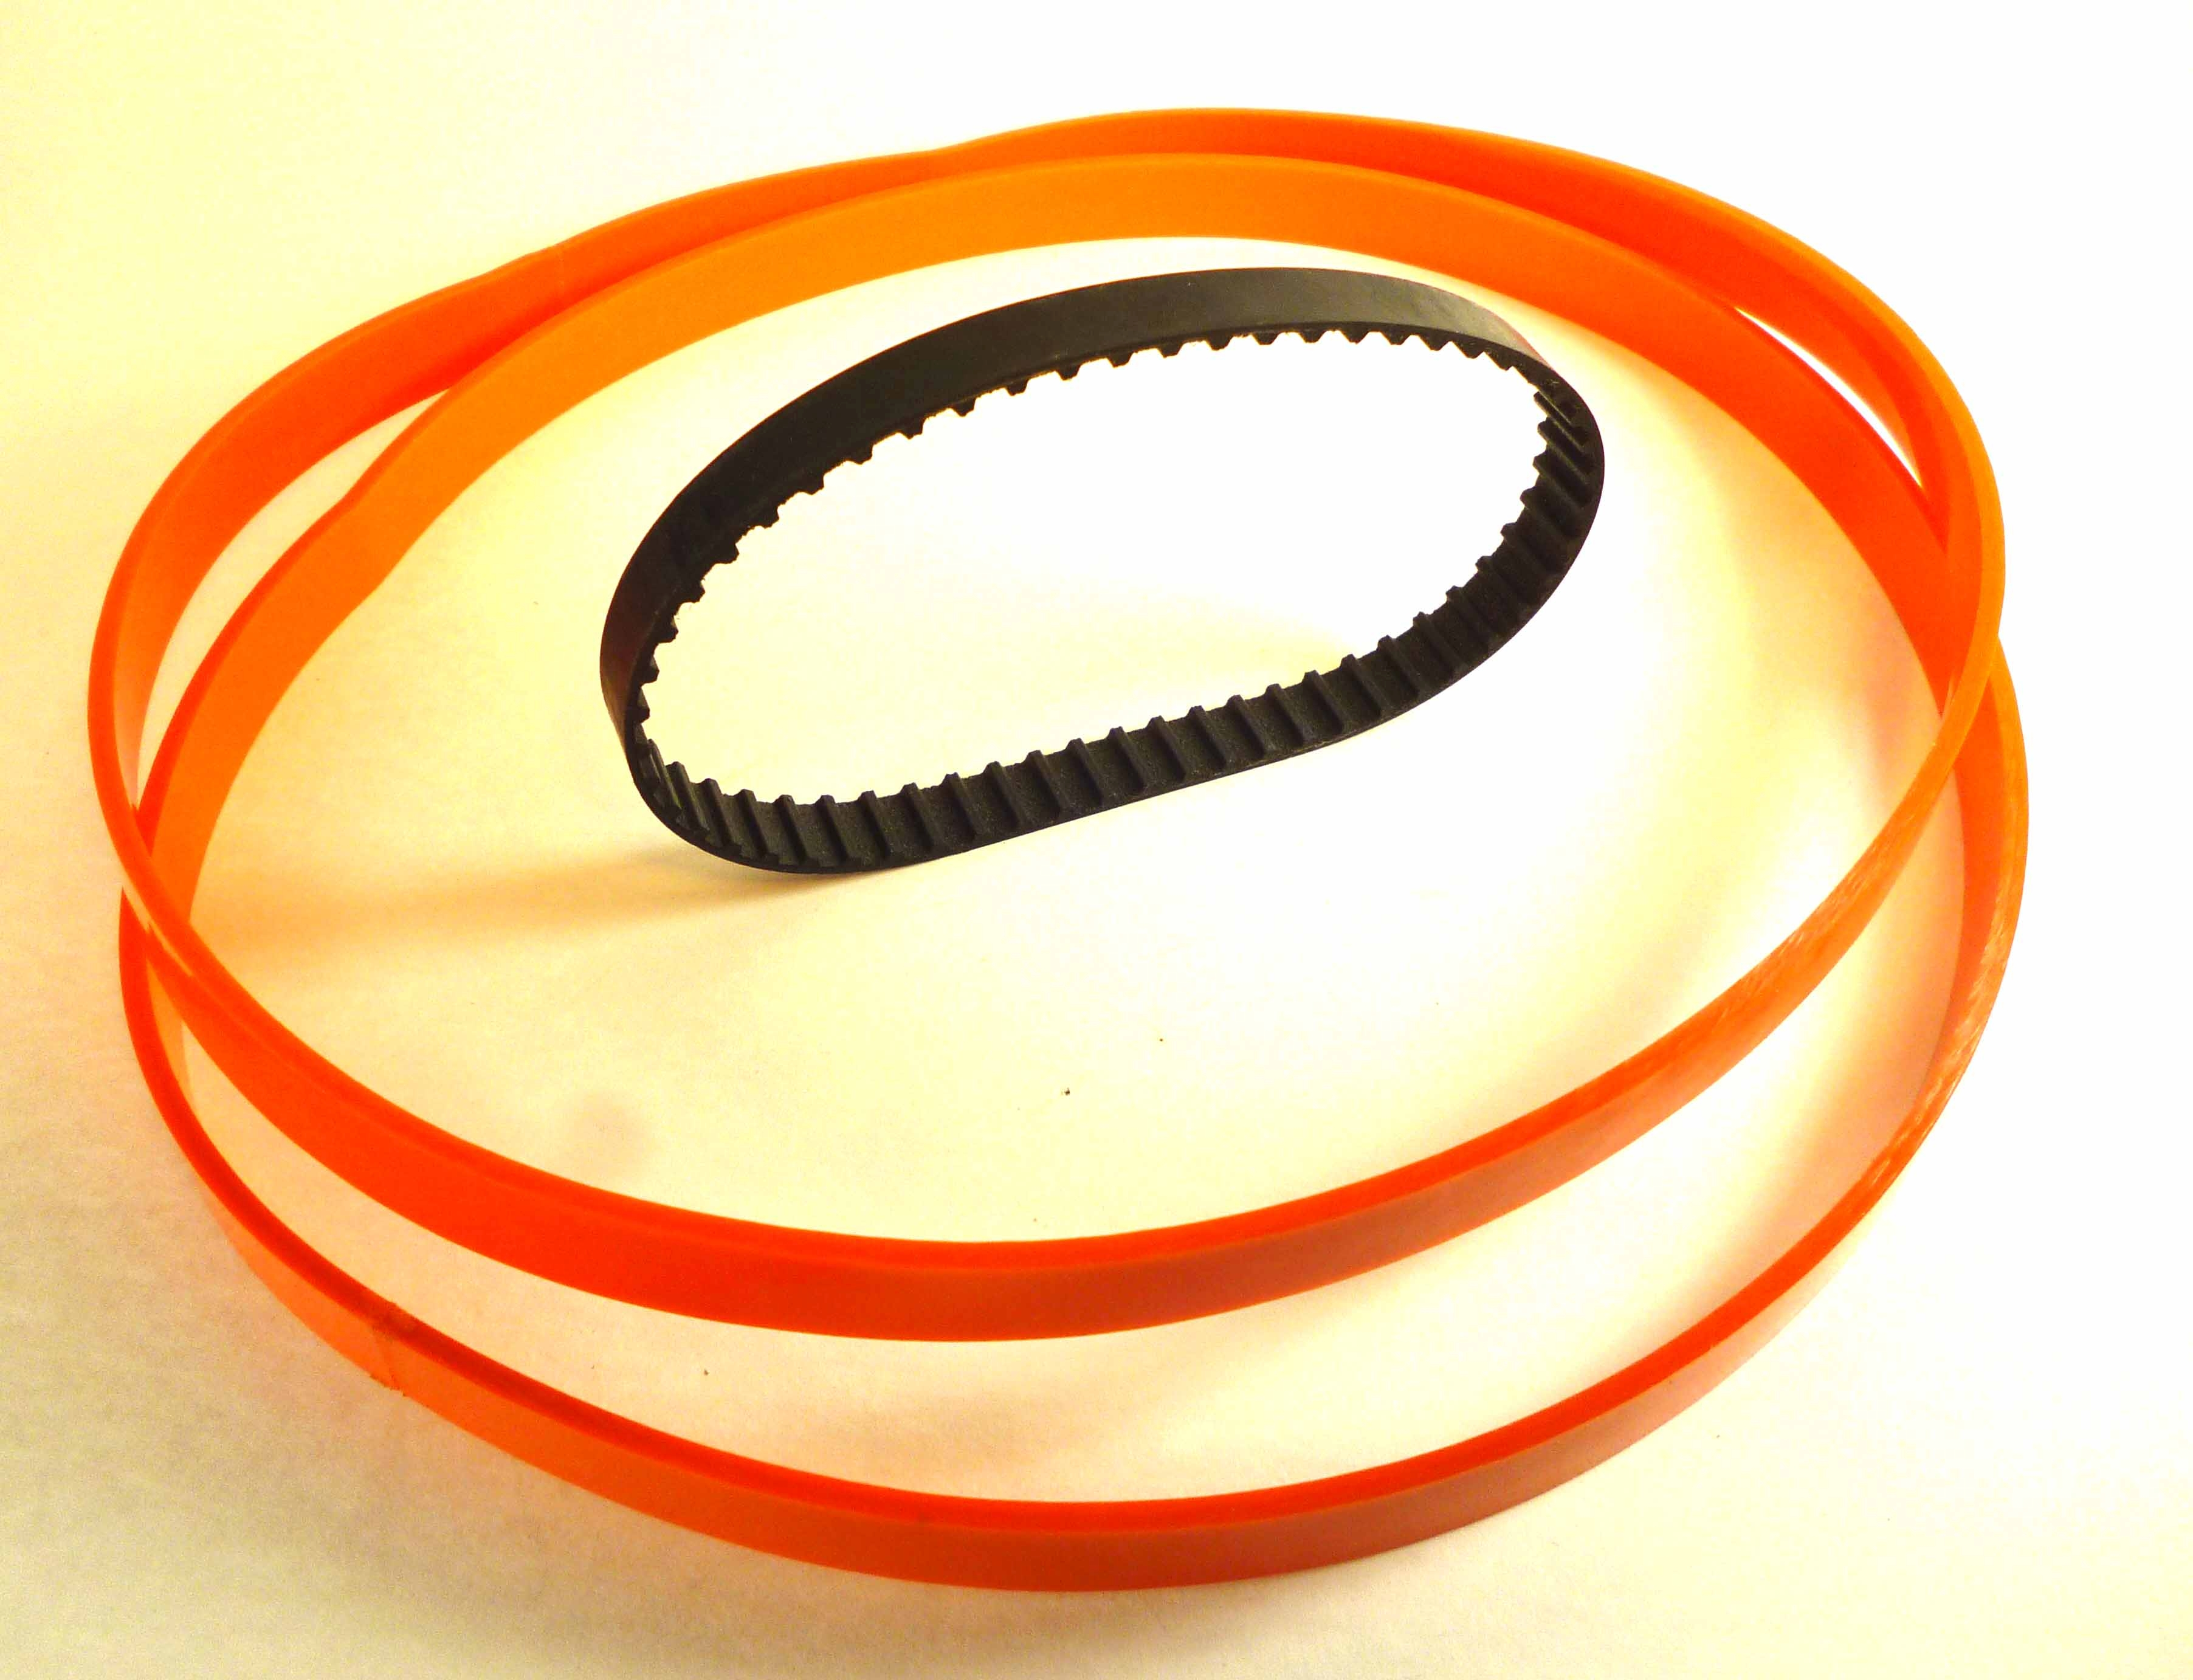 2 PolyBelt Urethane Band Saw TIRE SET for RYOBI BS901 Replaces TIRE # BS90104200